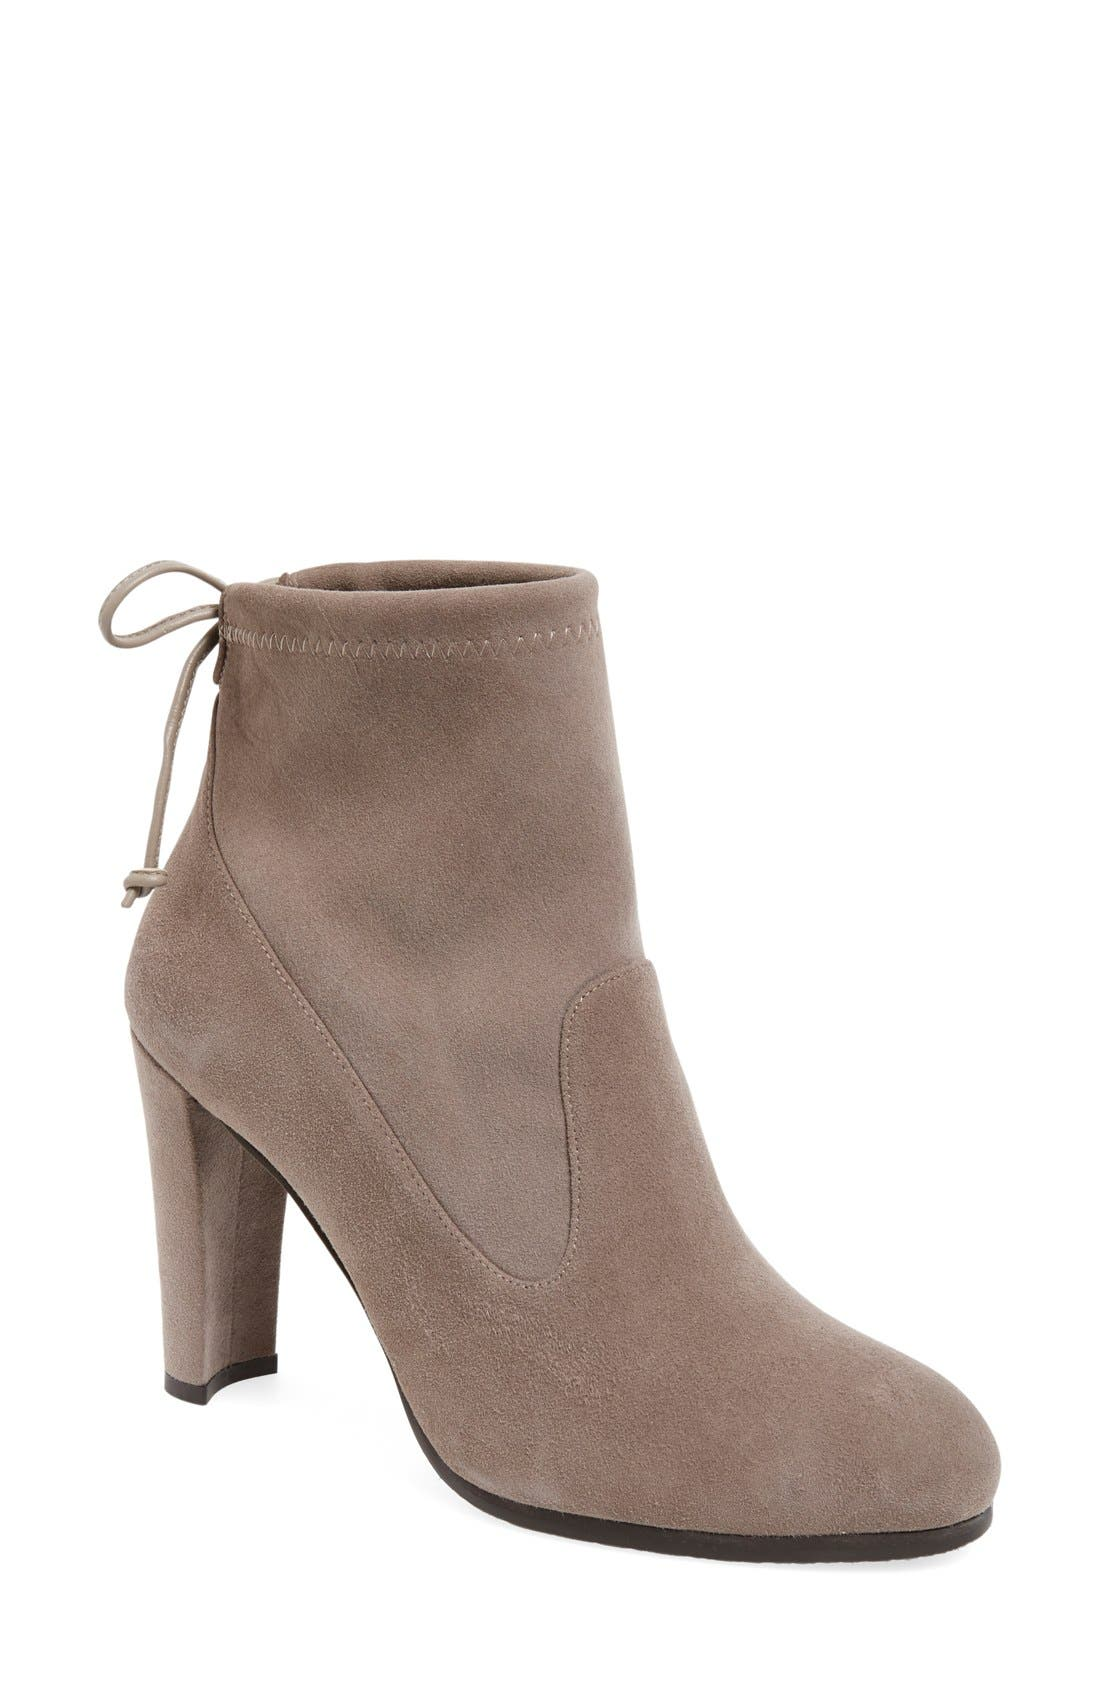 'Perfection' Bootie,                             Main thumbnail 1, color,                             Topo Suede